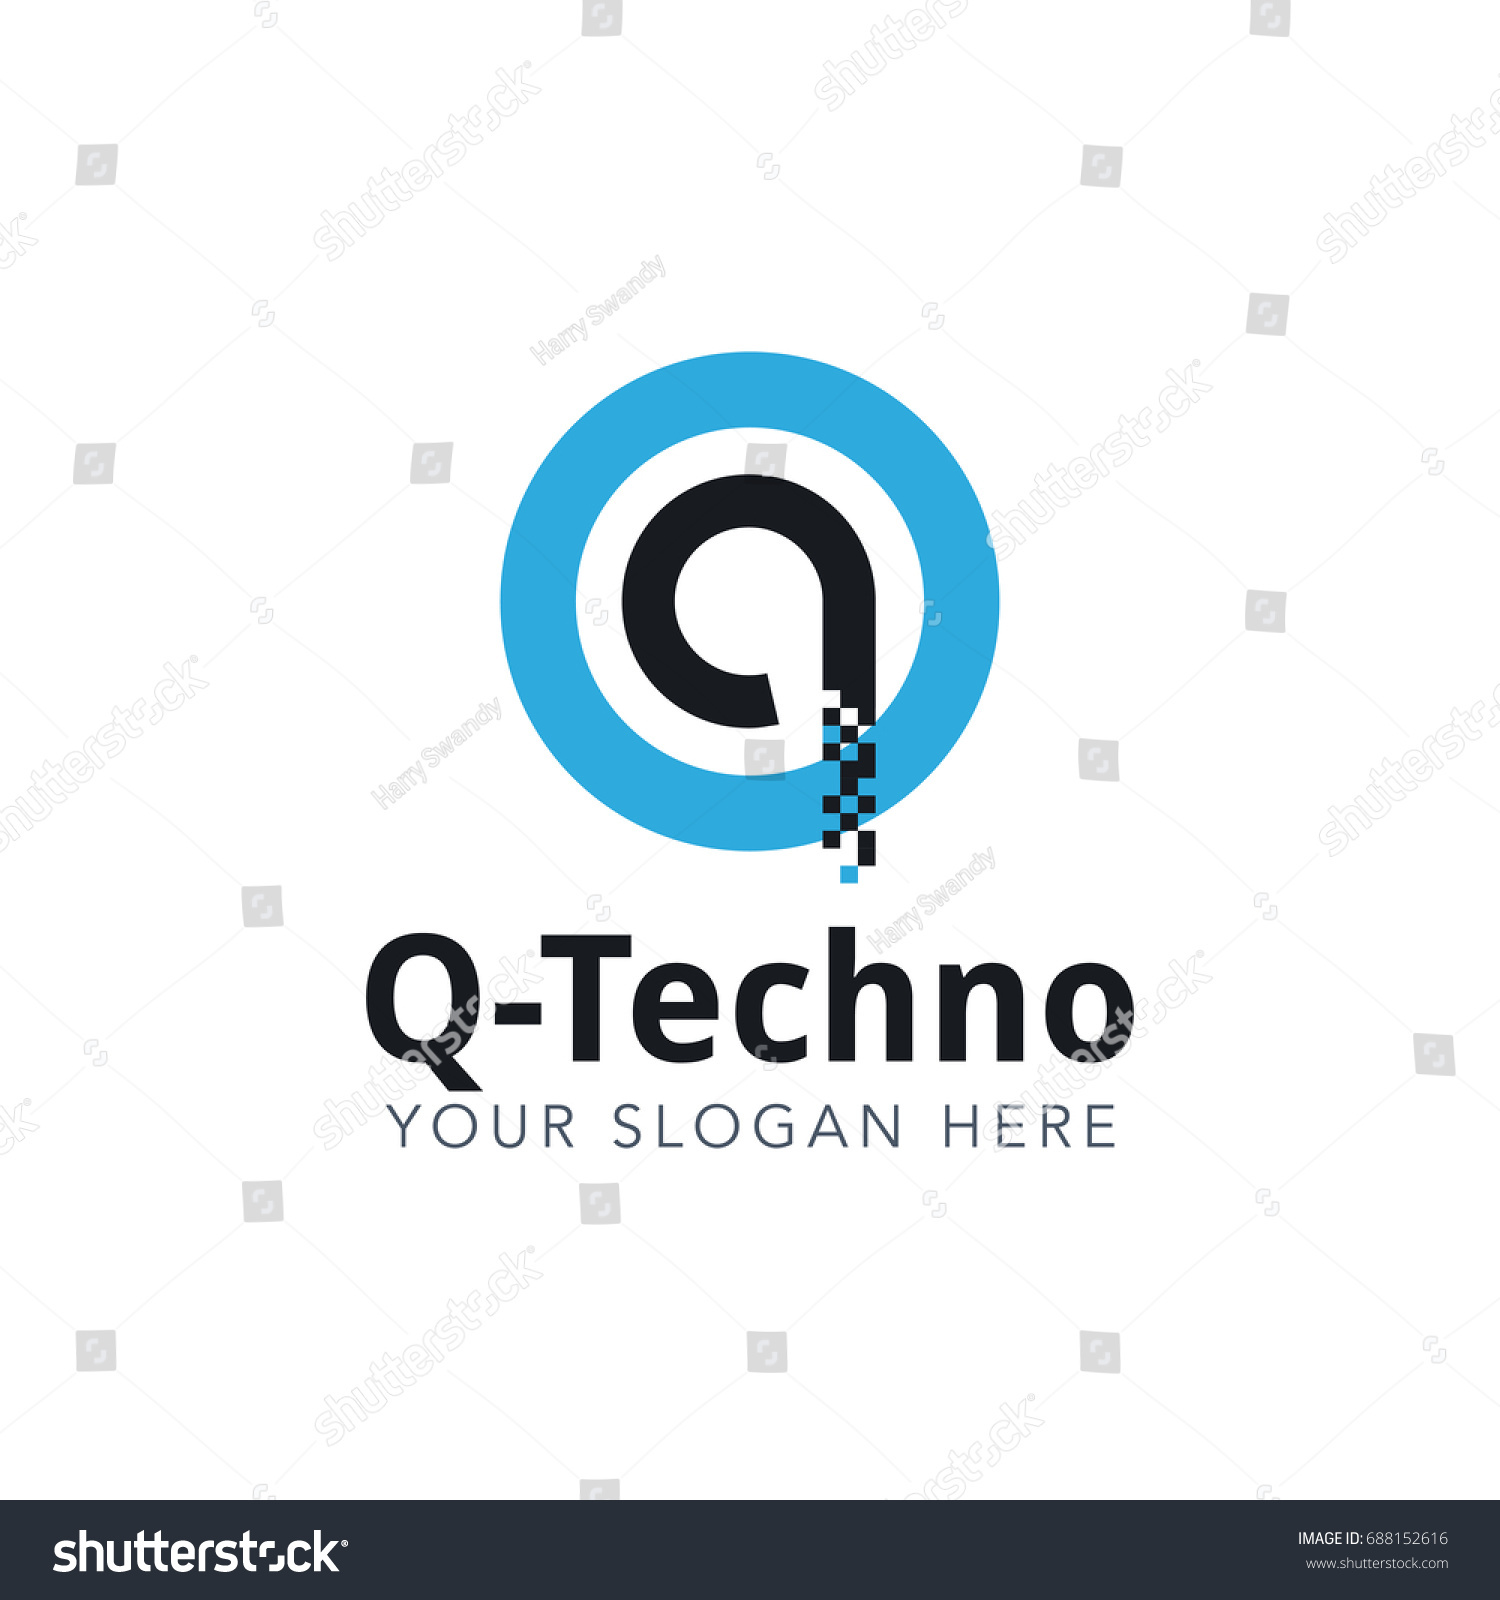 Letter Q Pixel Logo Design Template With Blue Circle Isolated on White  Background. Vector Illustration